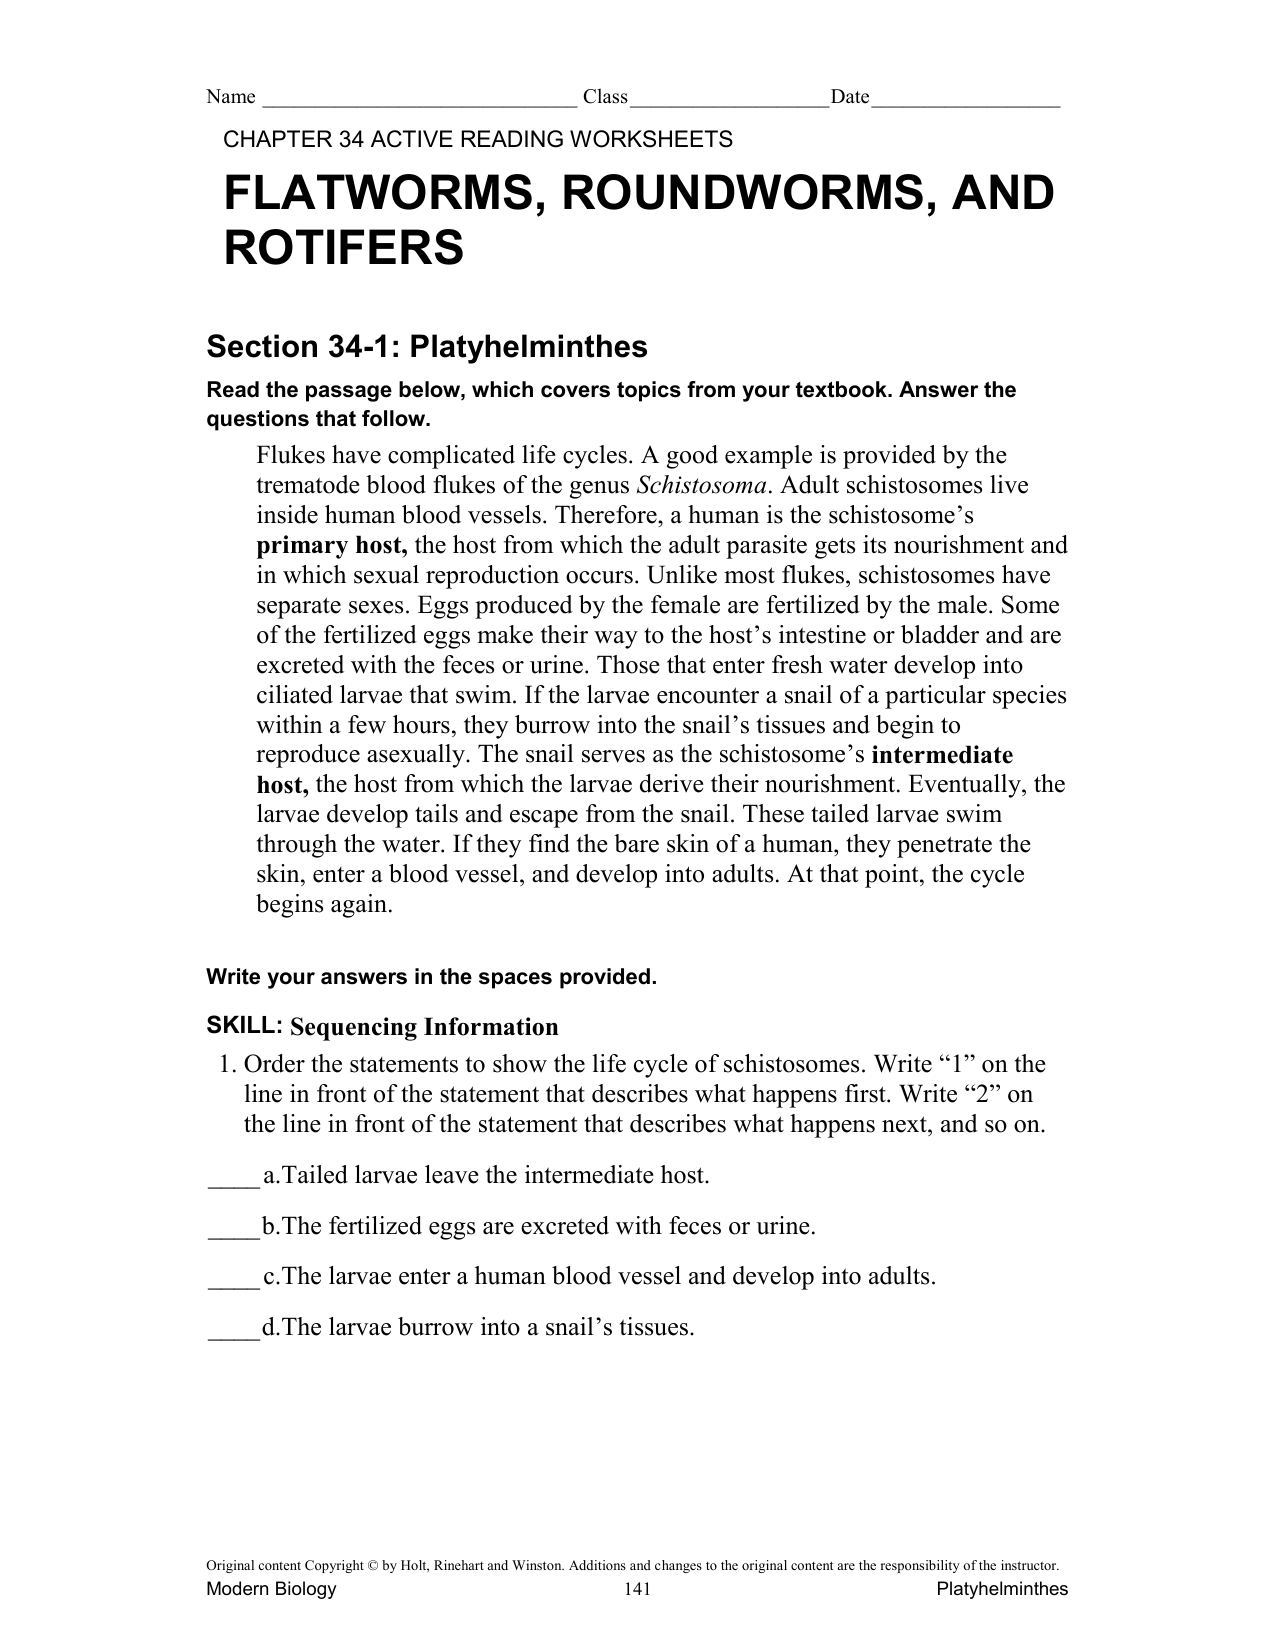 Platyhelminthes – Active Reading Worksheets